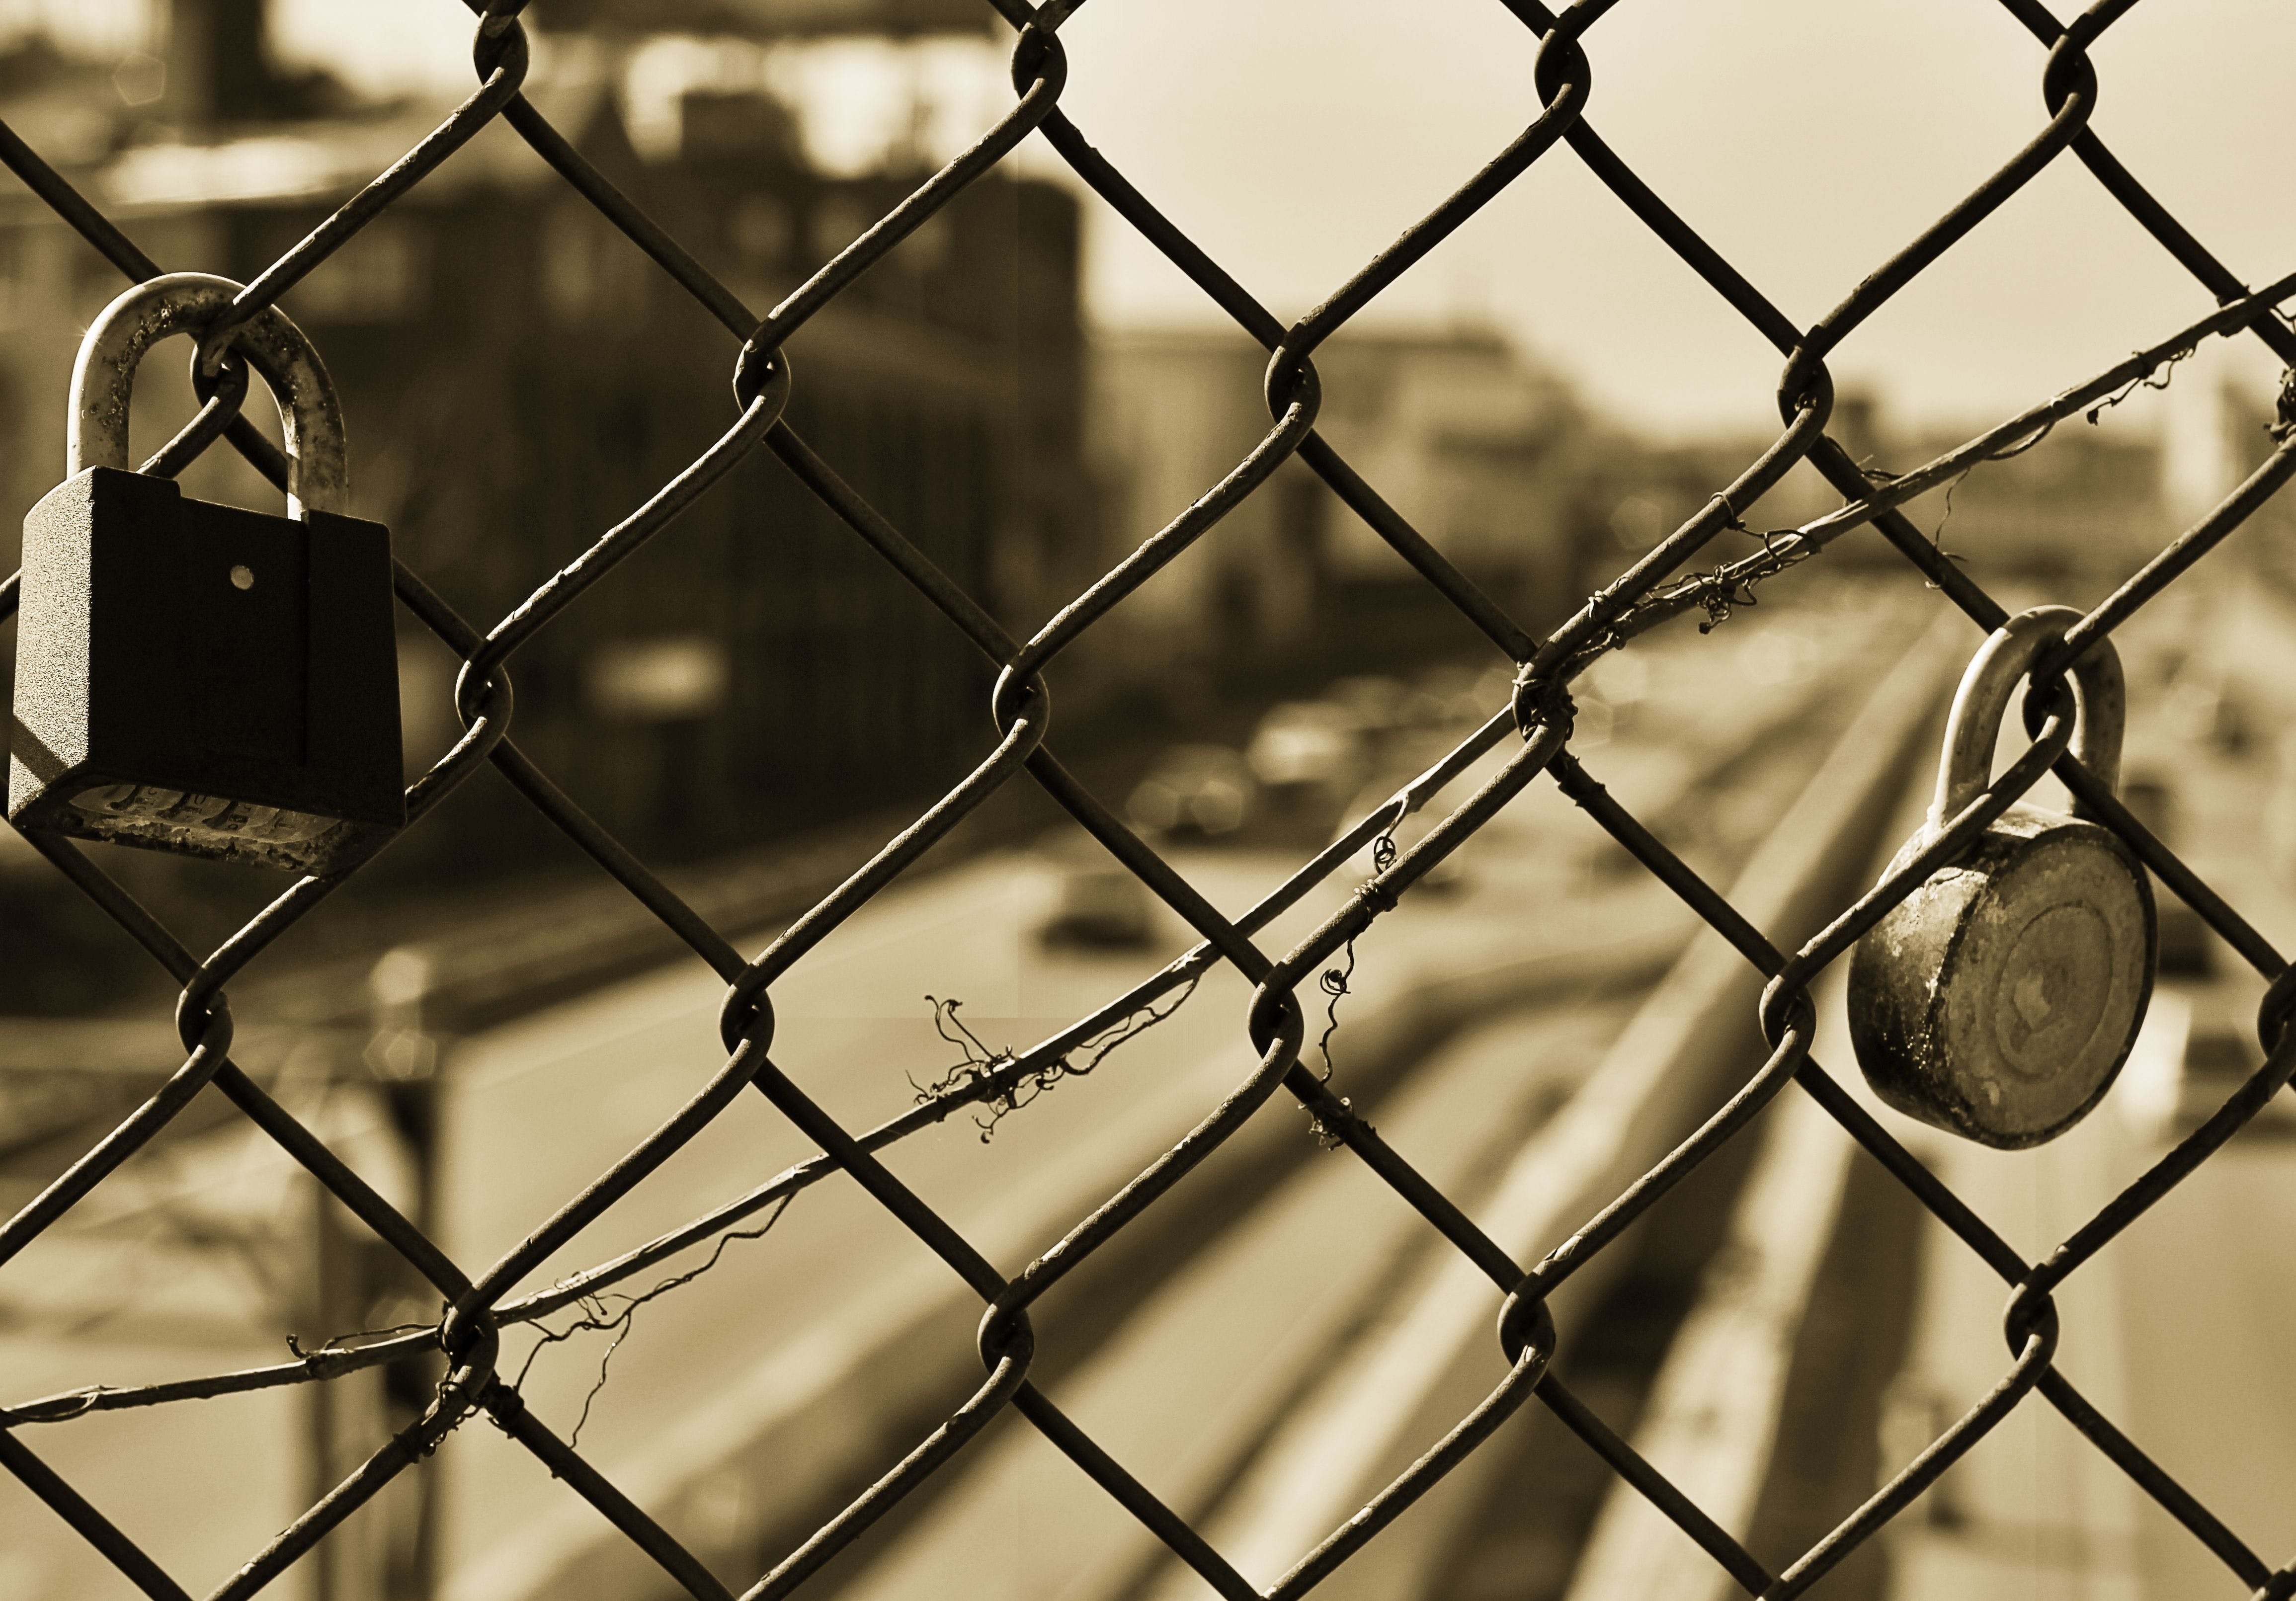 Two Black Padlocks on Grey Metal Wire Fence